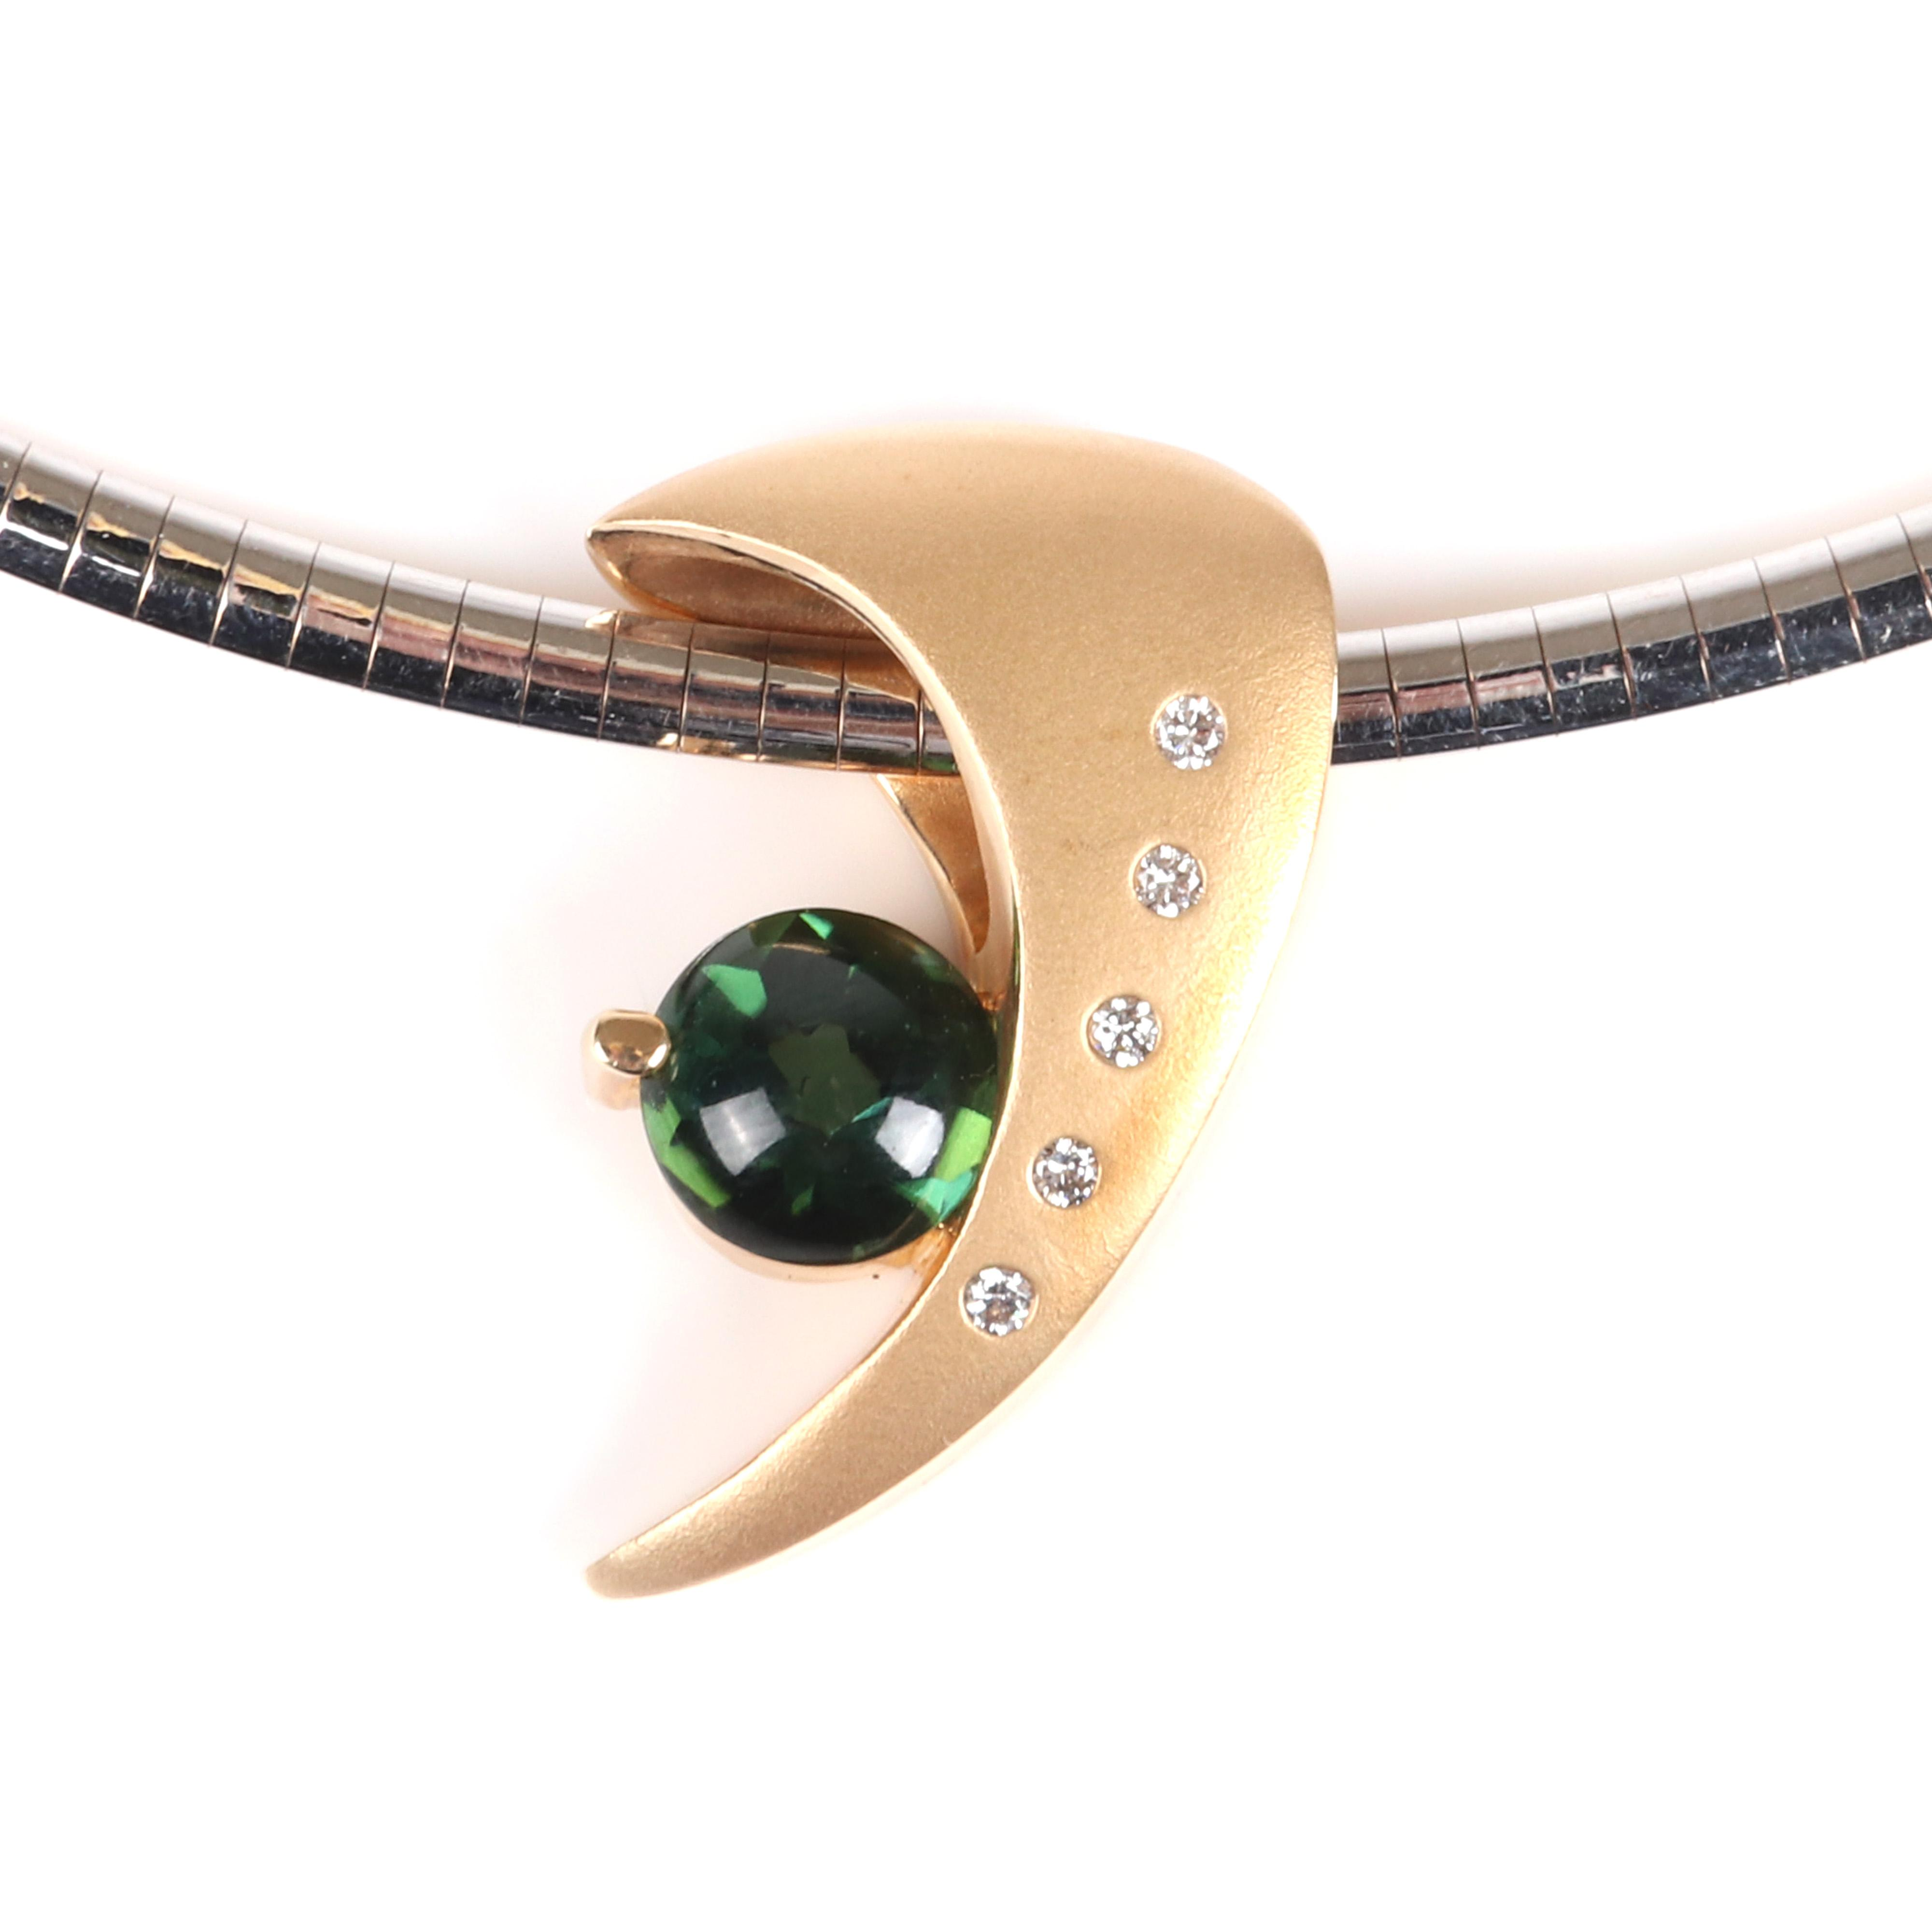 """Designer 14K yellow gold diamond and green tourmaline modernist boomerang pendant with matte and polished finish, signed, on white/yellow gold reversible omega 3mm collar necklace with yellow gold clasp. 16""""L, 1 1/4""""H x"""